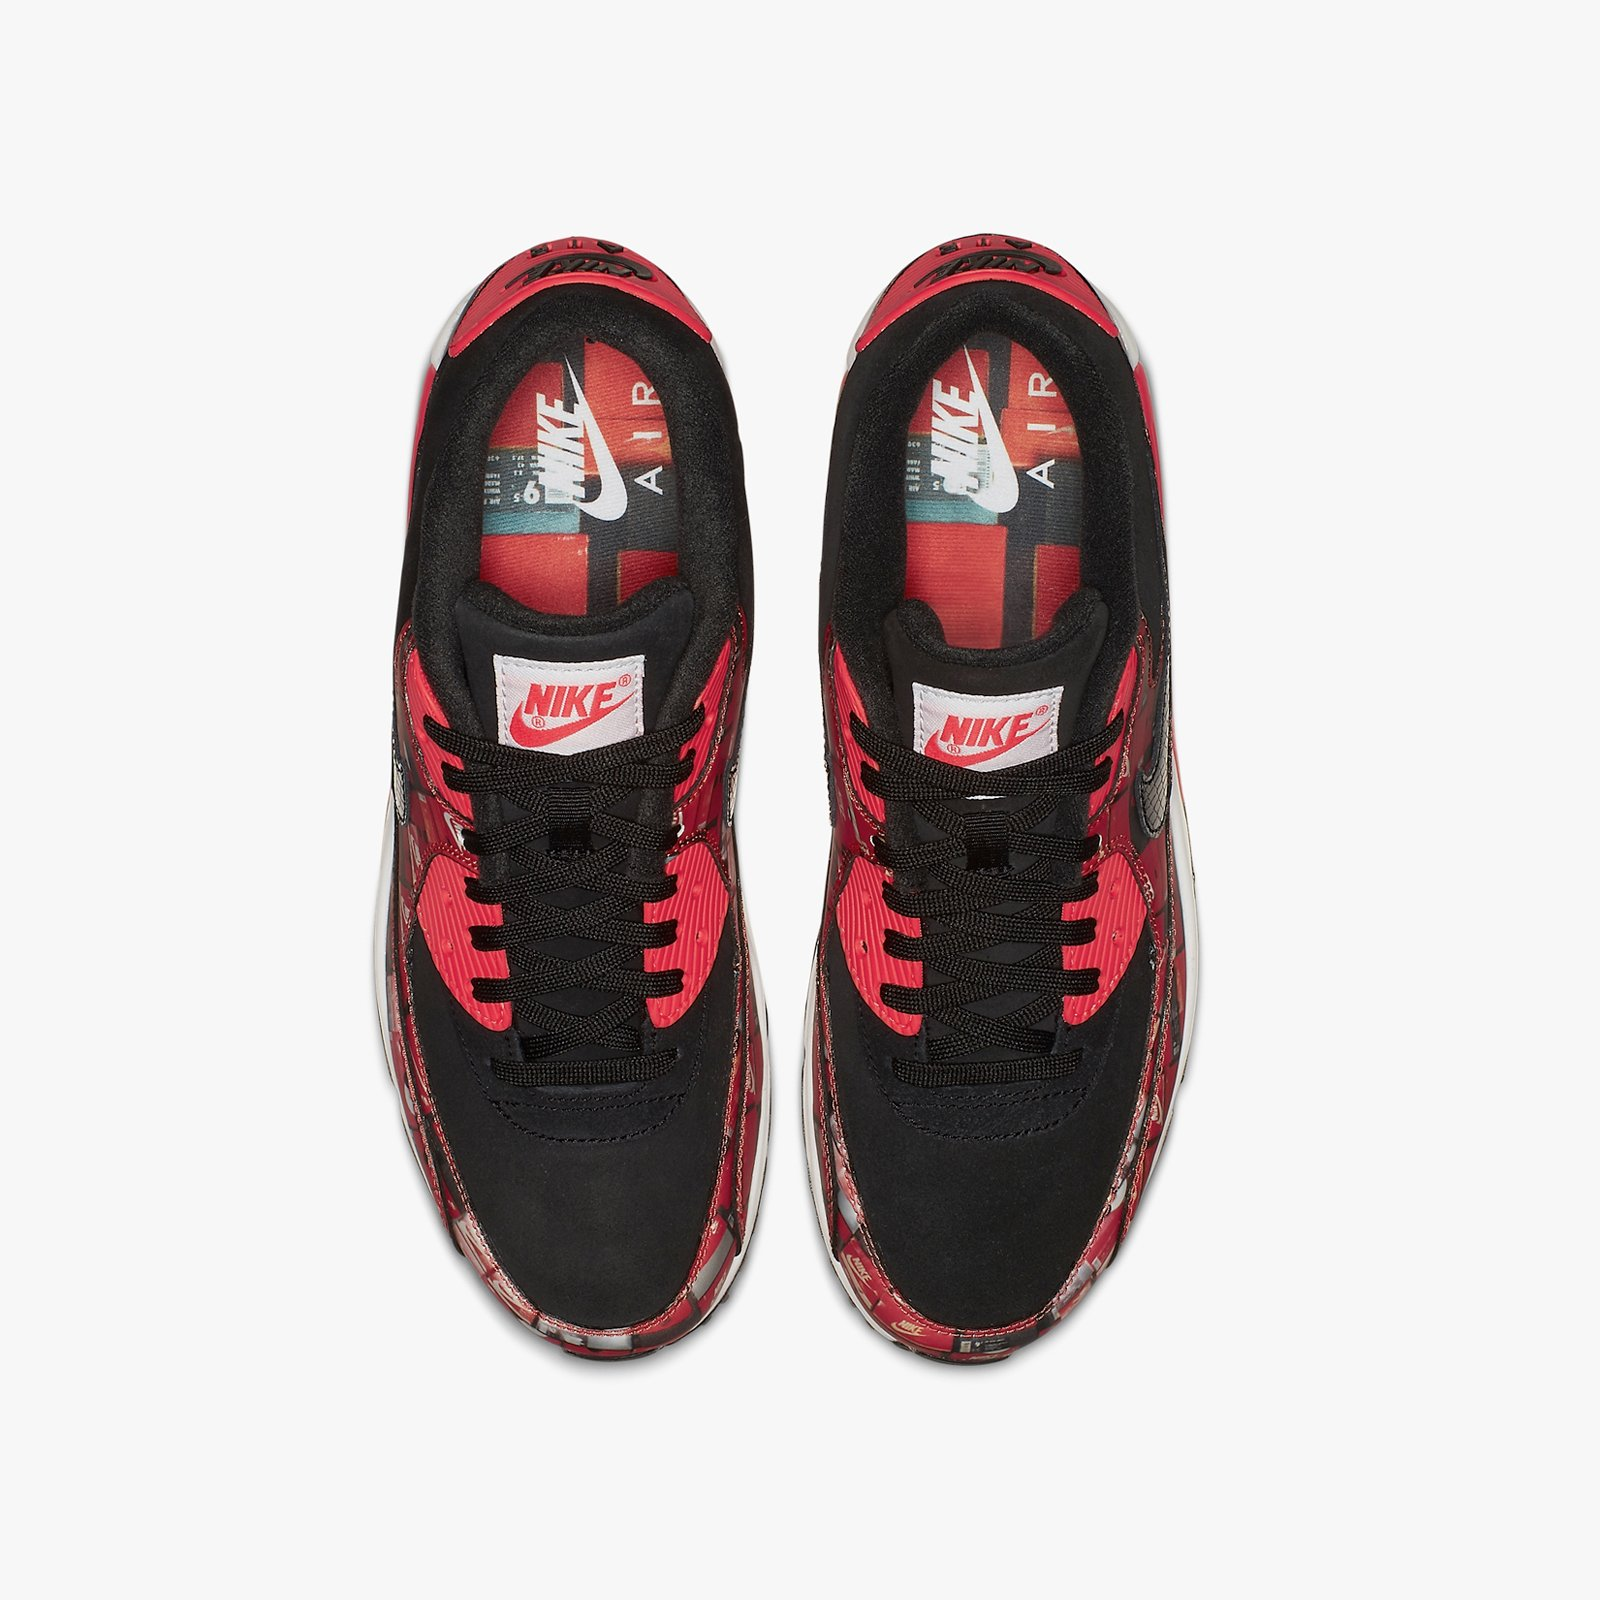 wholesale dealer 4cfab 8a8b5 Nike Sportswear Air Max 90 Print - 6. Close